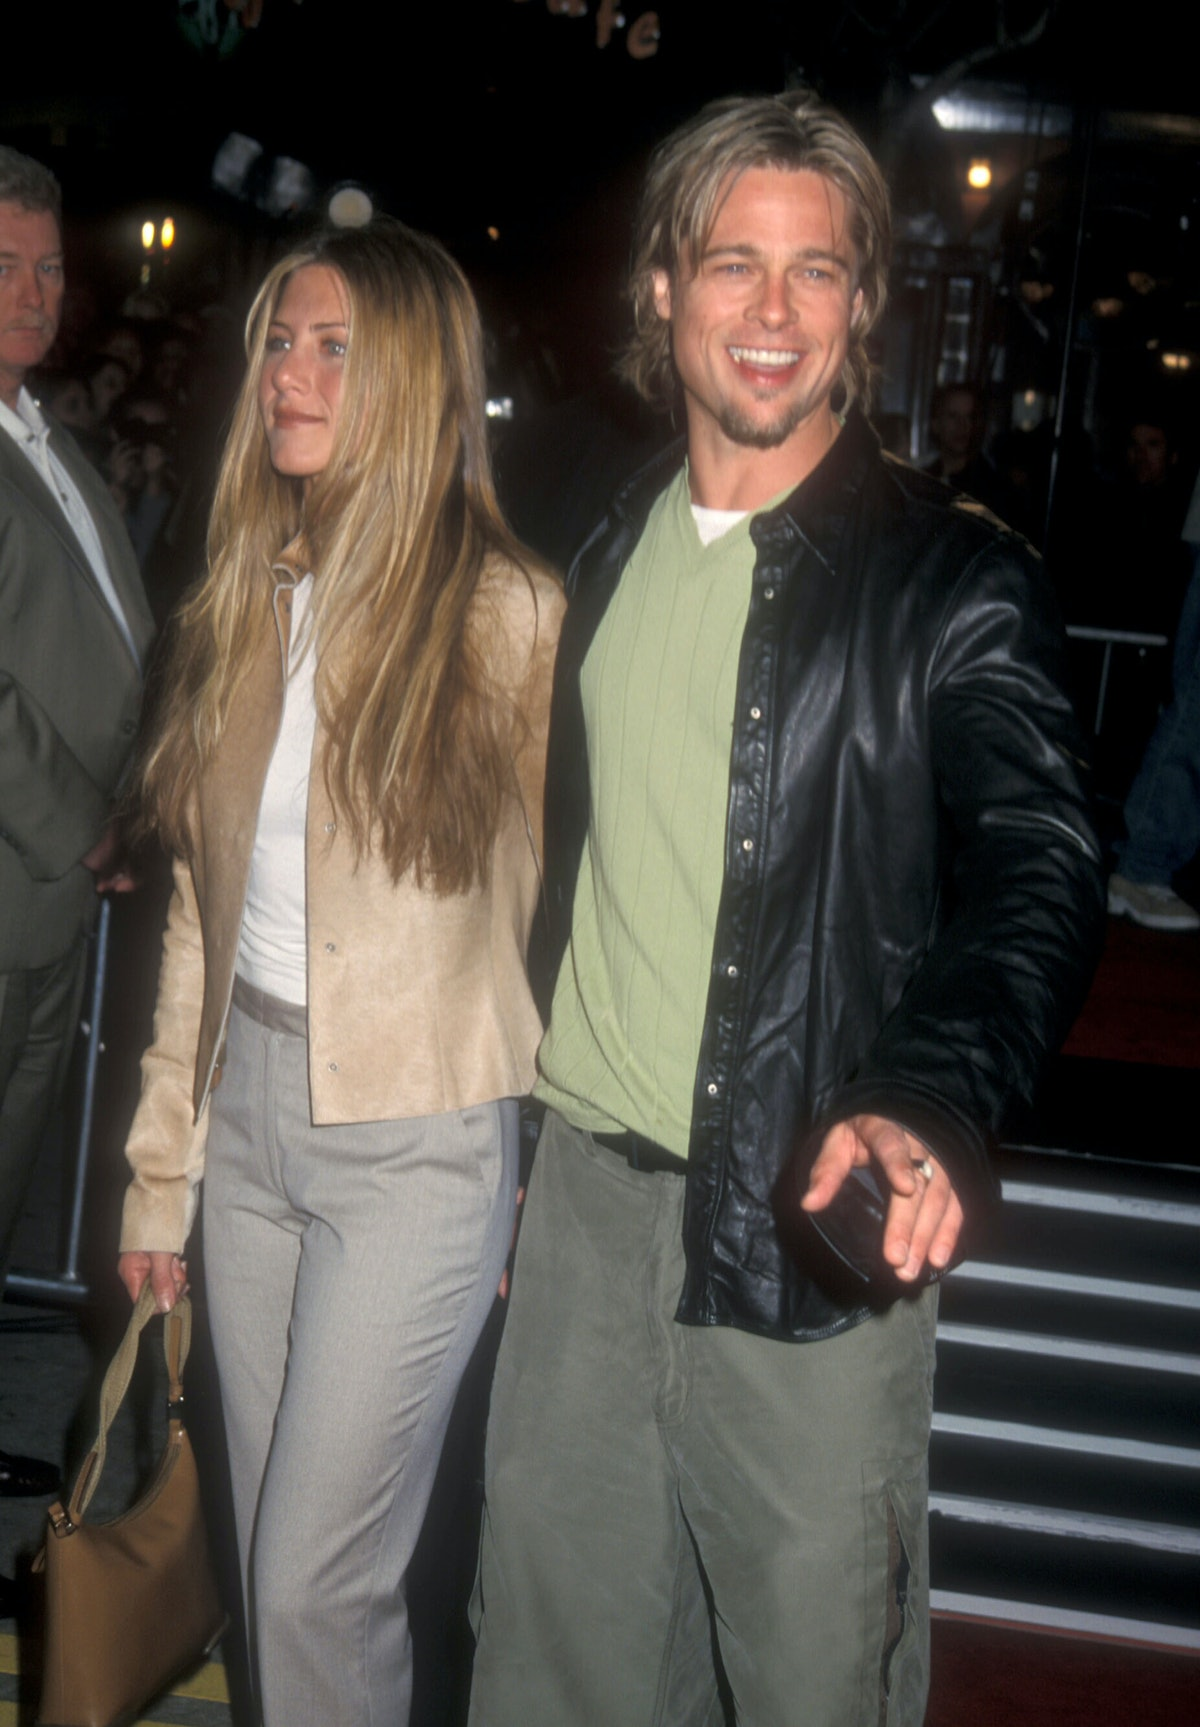 Aniston and Pitt, wearing a green sweater vest